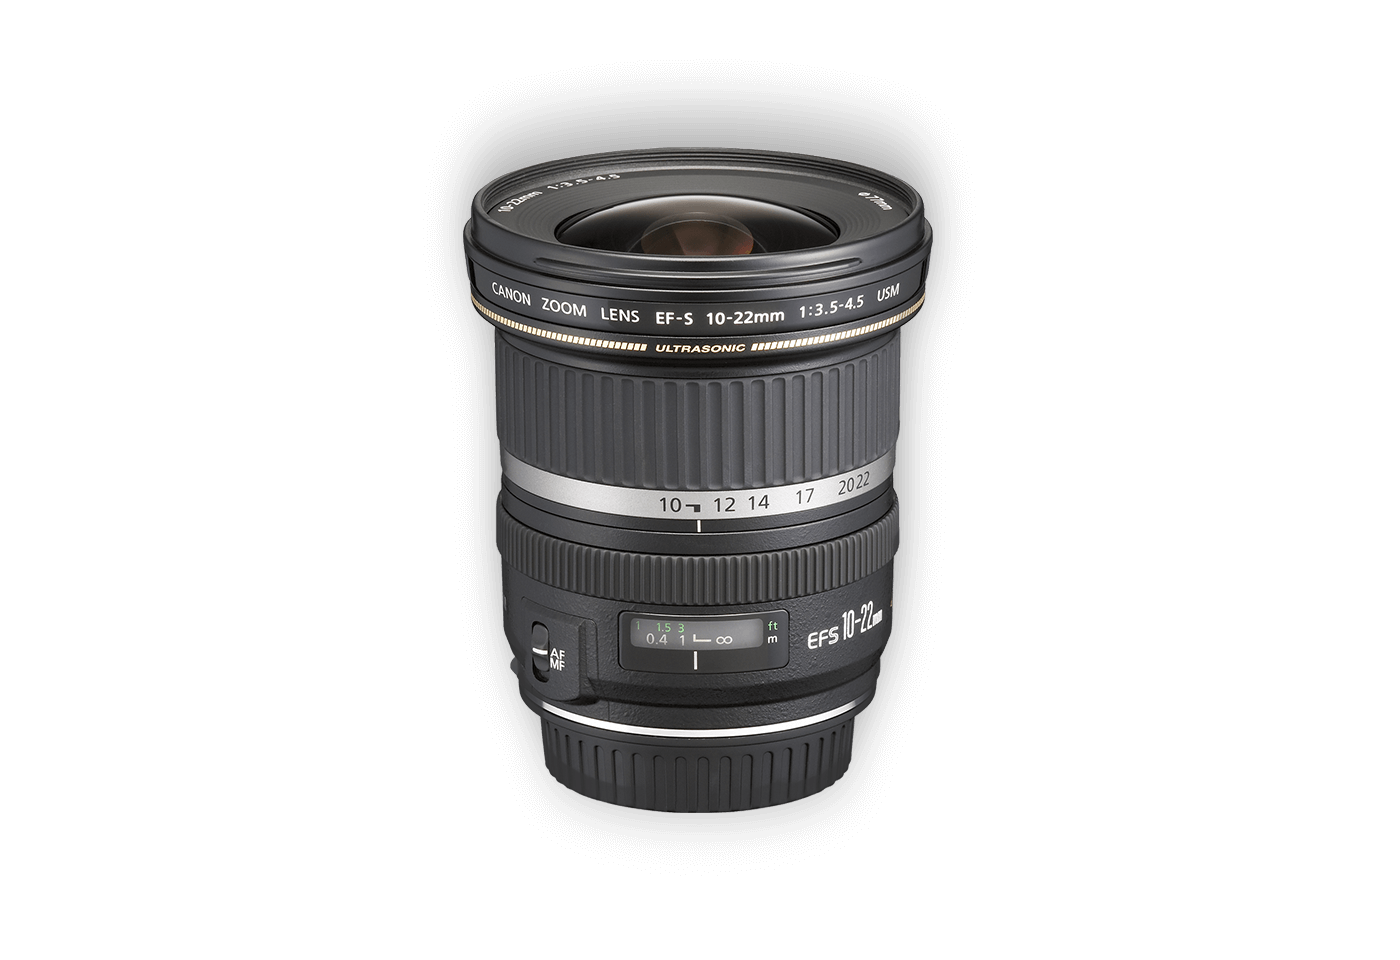 Side view of Canon EF-S 10-22mm f/3.5-4.5 USM lens